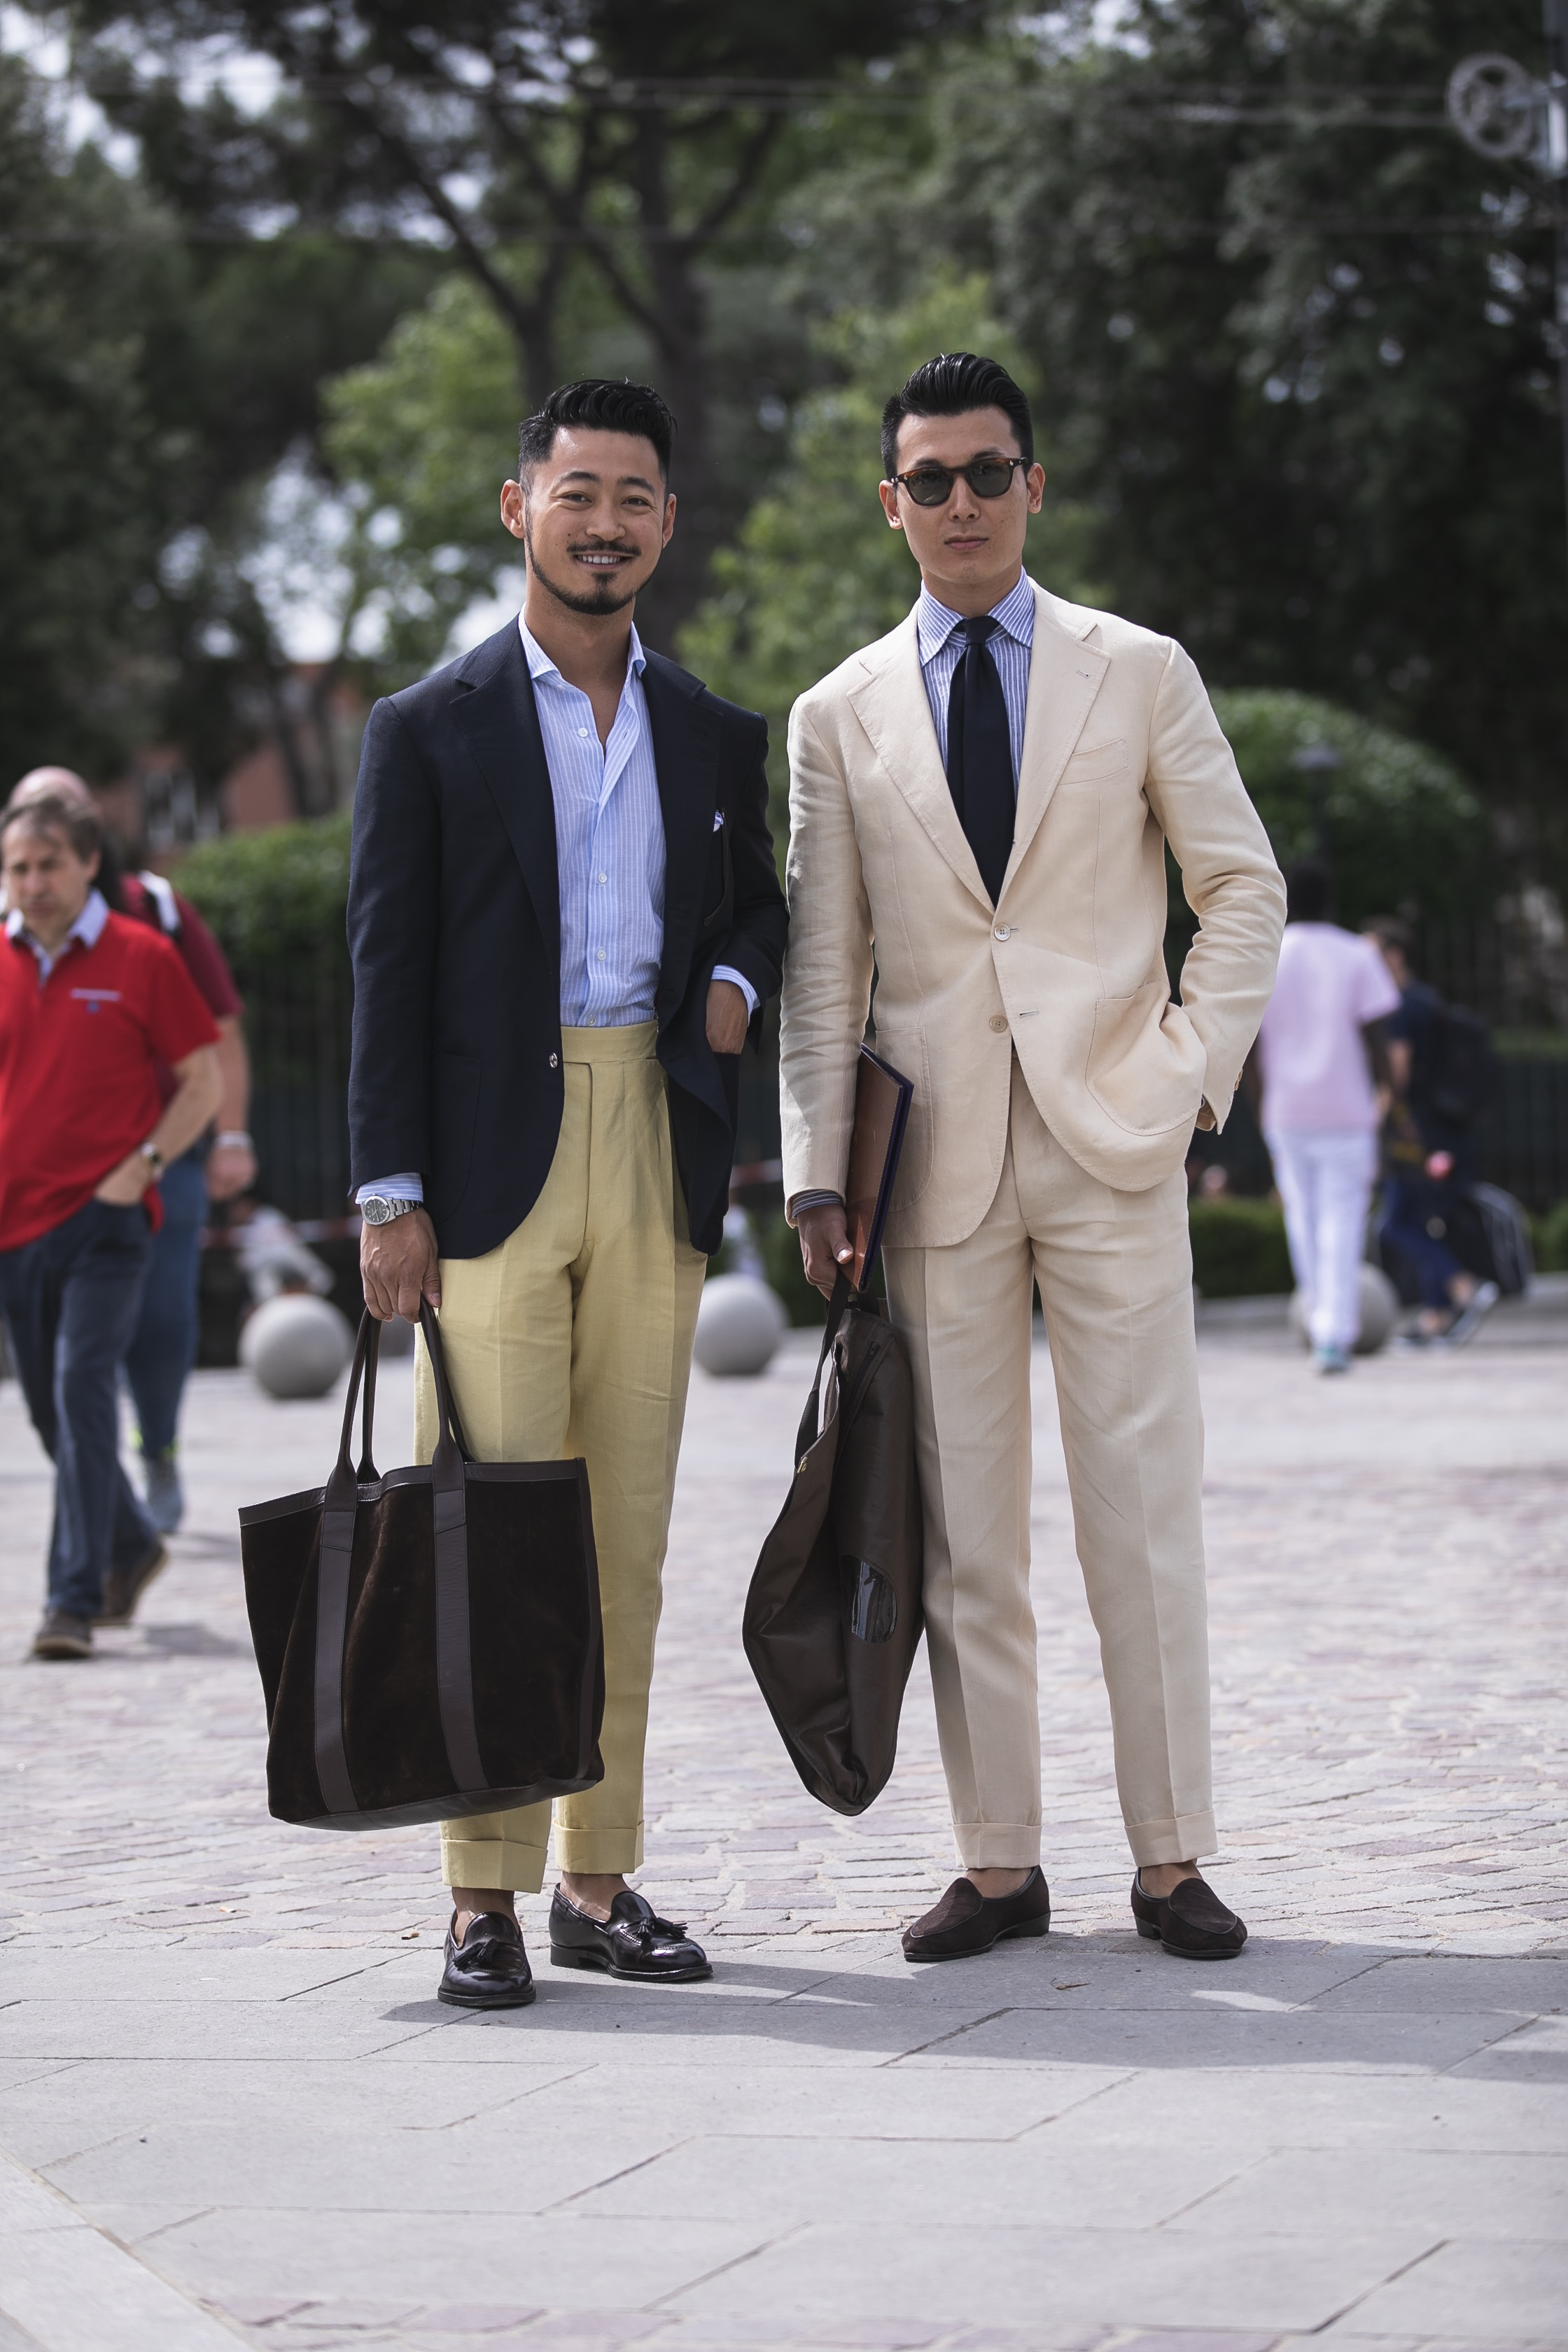 pitti uomo 94 streetstyle suit best outfit men trends